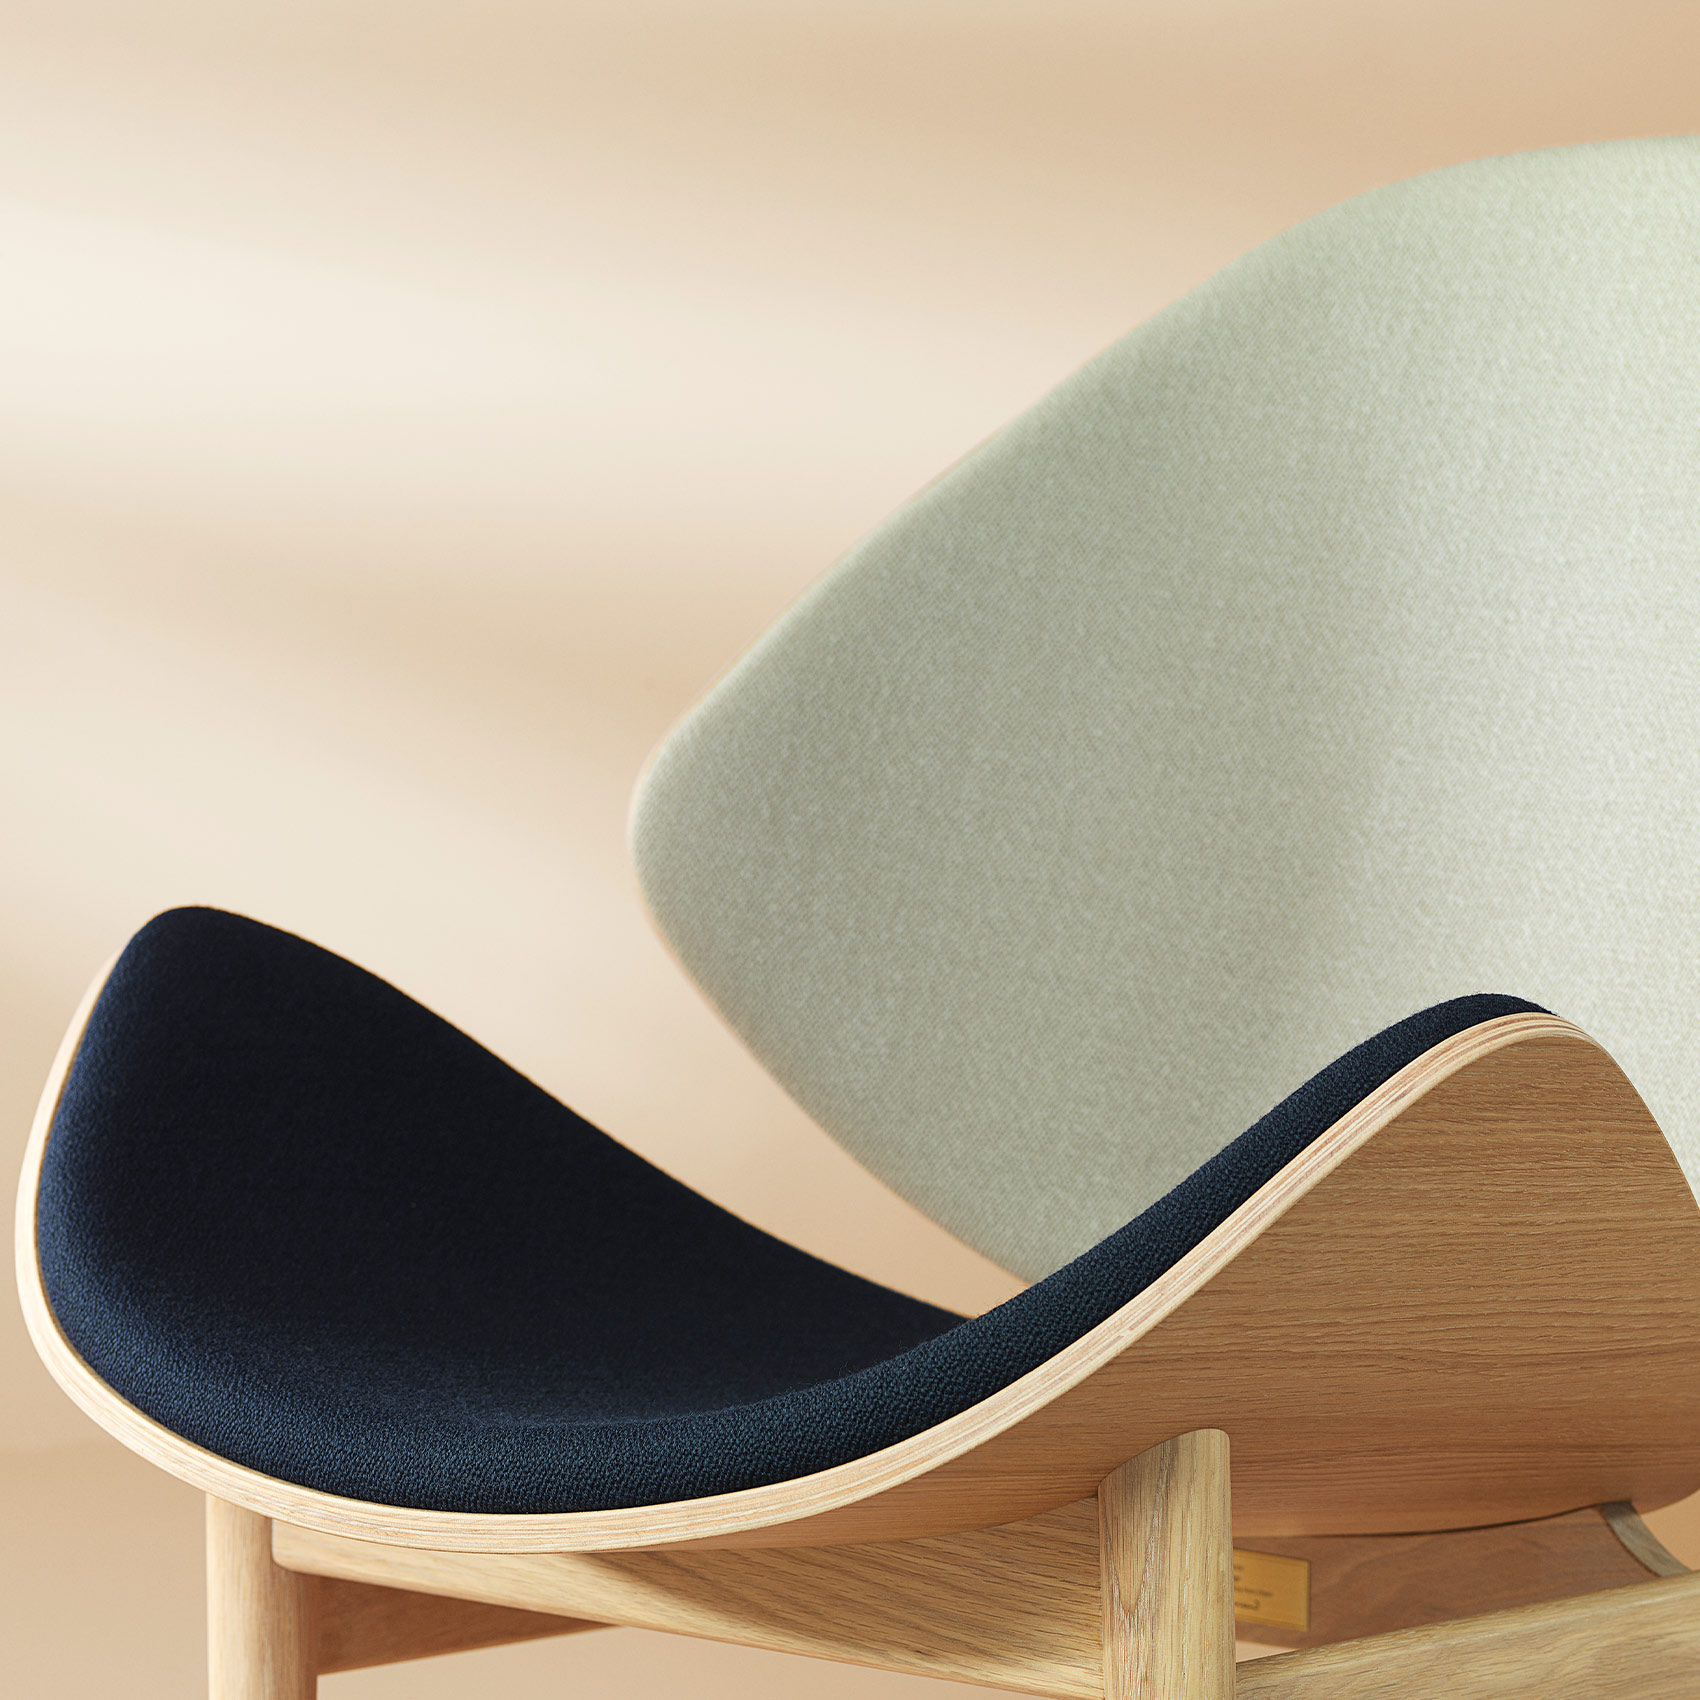 The orange lounge chair in grey navy and blue colour